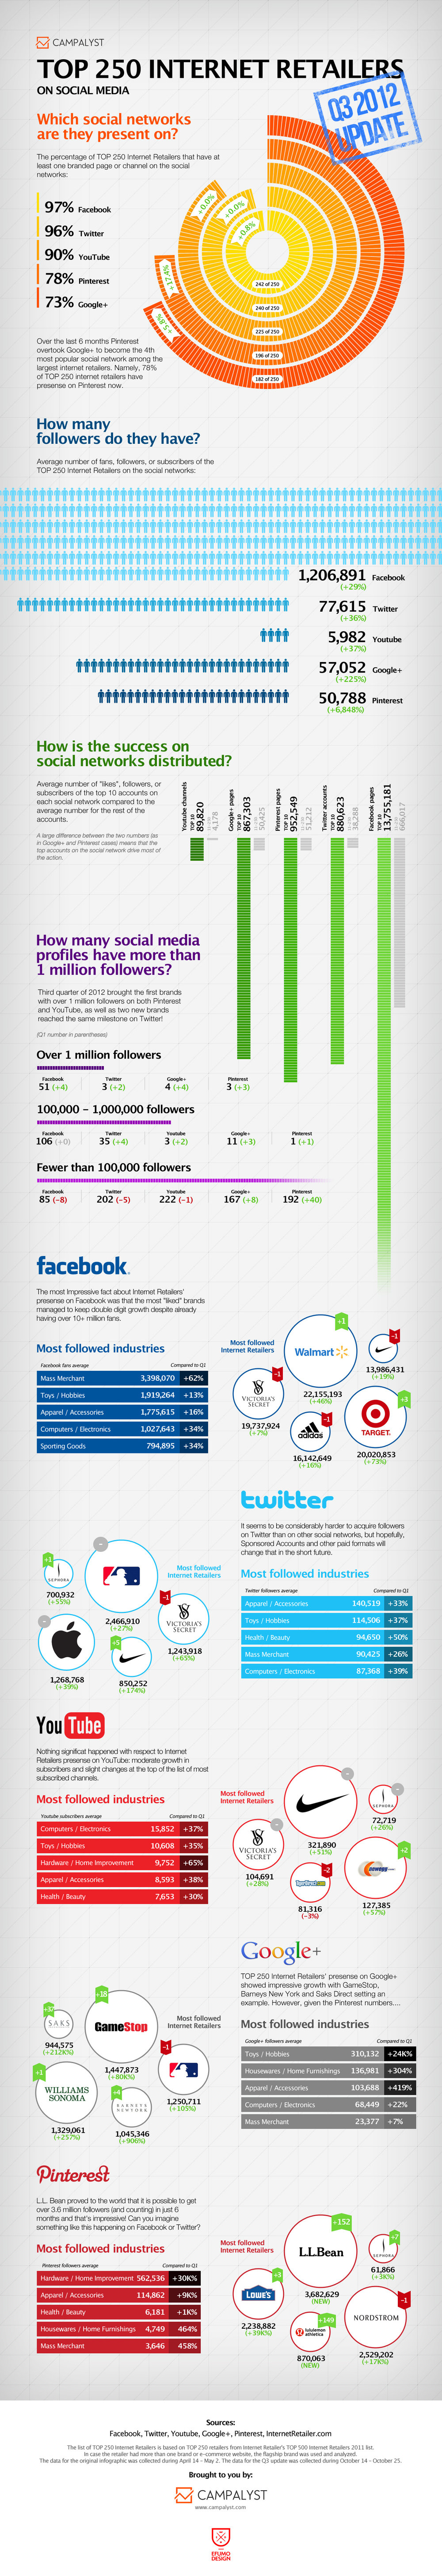 Top 250 Internet Retailers Q3 2012 Update infographic